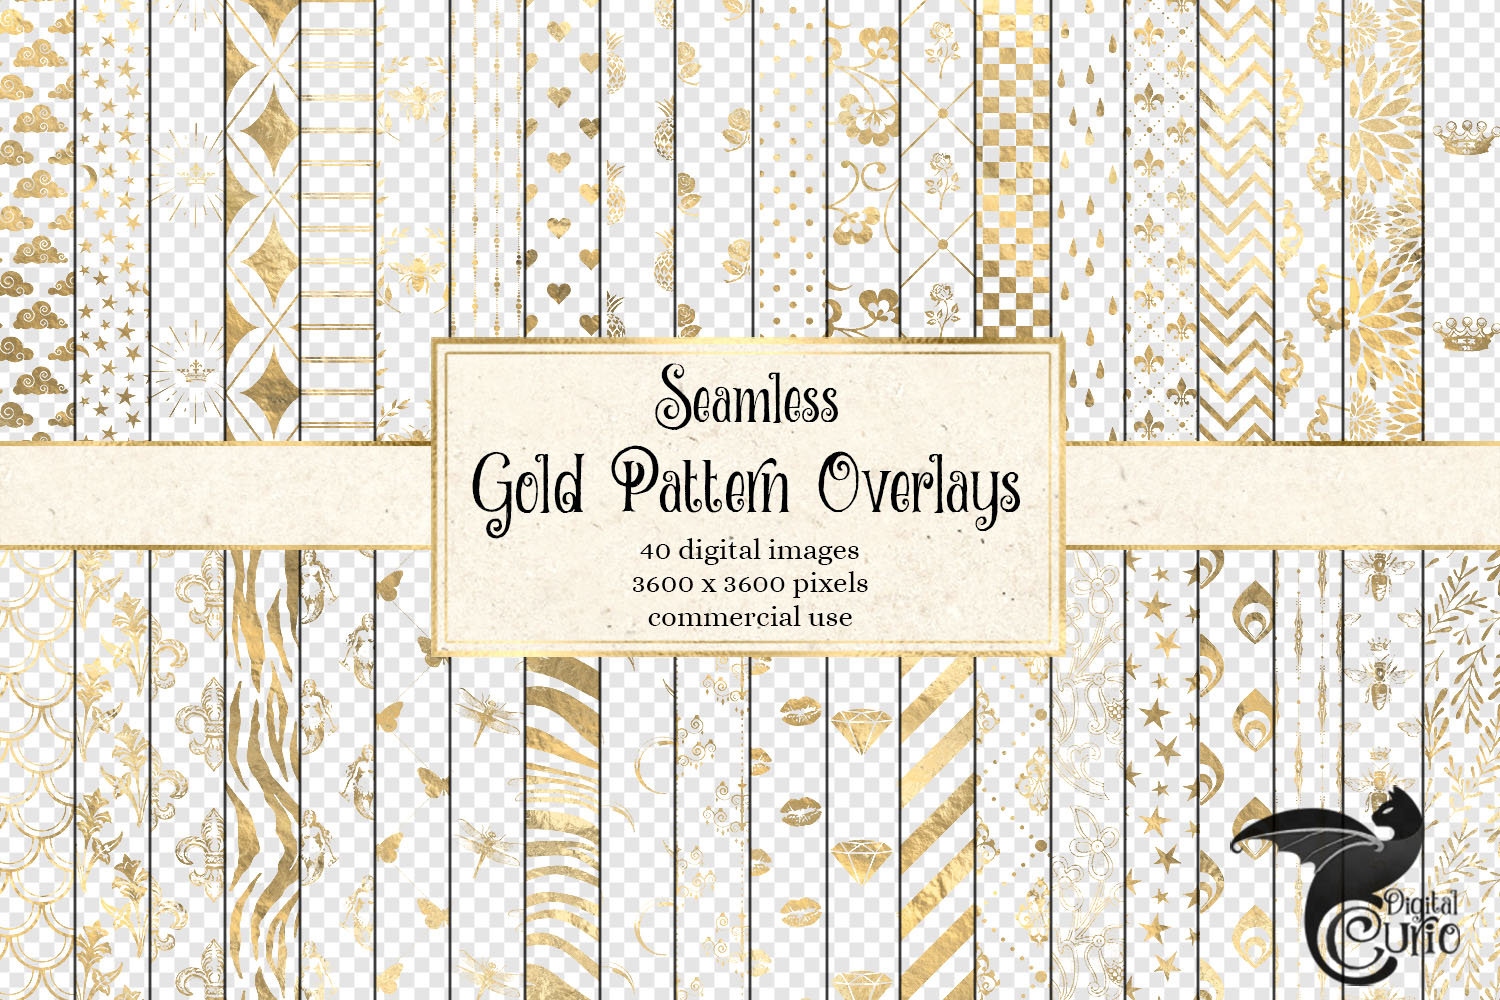 Download Free Gold Pattern Overlays Graphic By Digital Curio Creative Fabrica for Cricut Explore, Silhouette and other cutting machines.